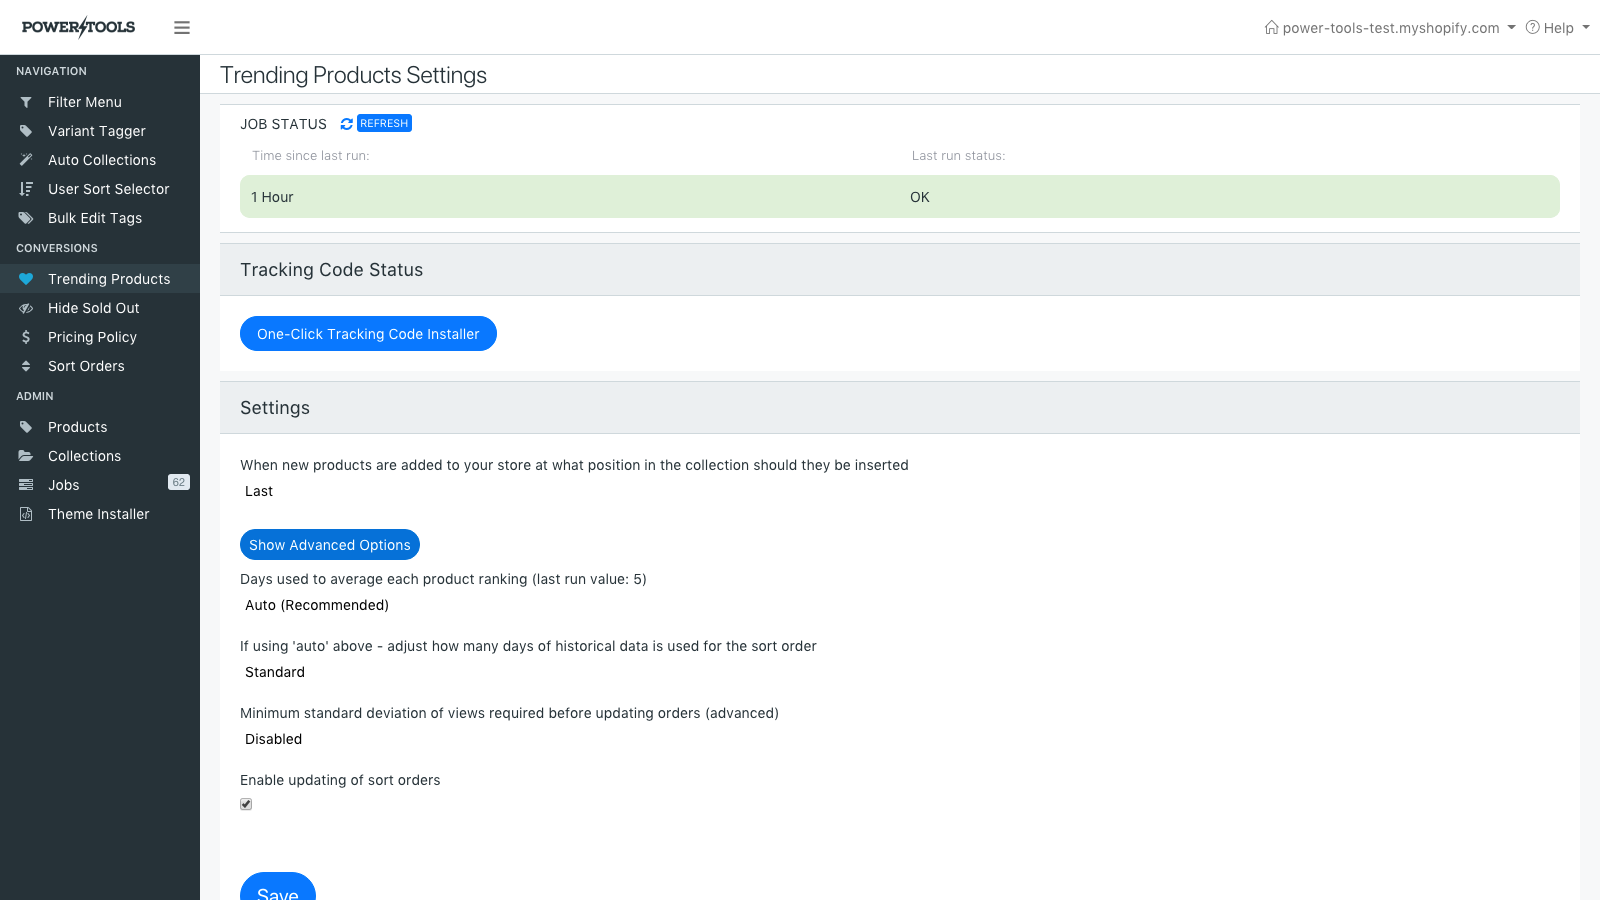 Customize settings, such as how frequently the order changes.